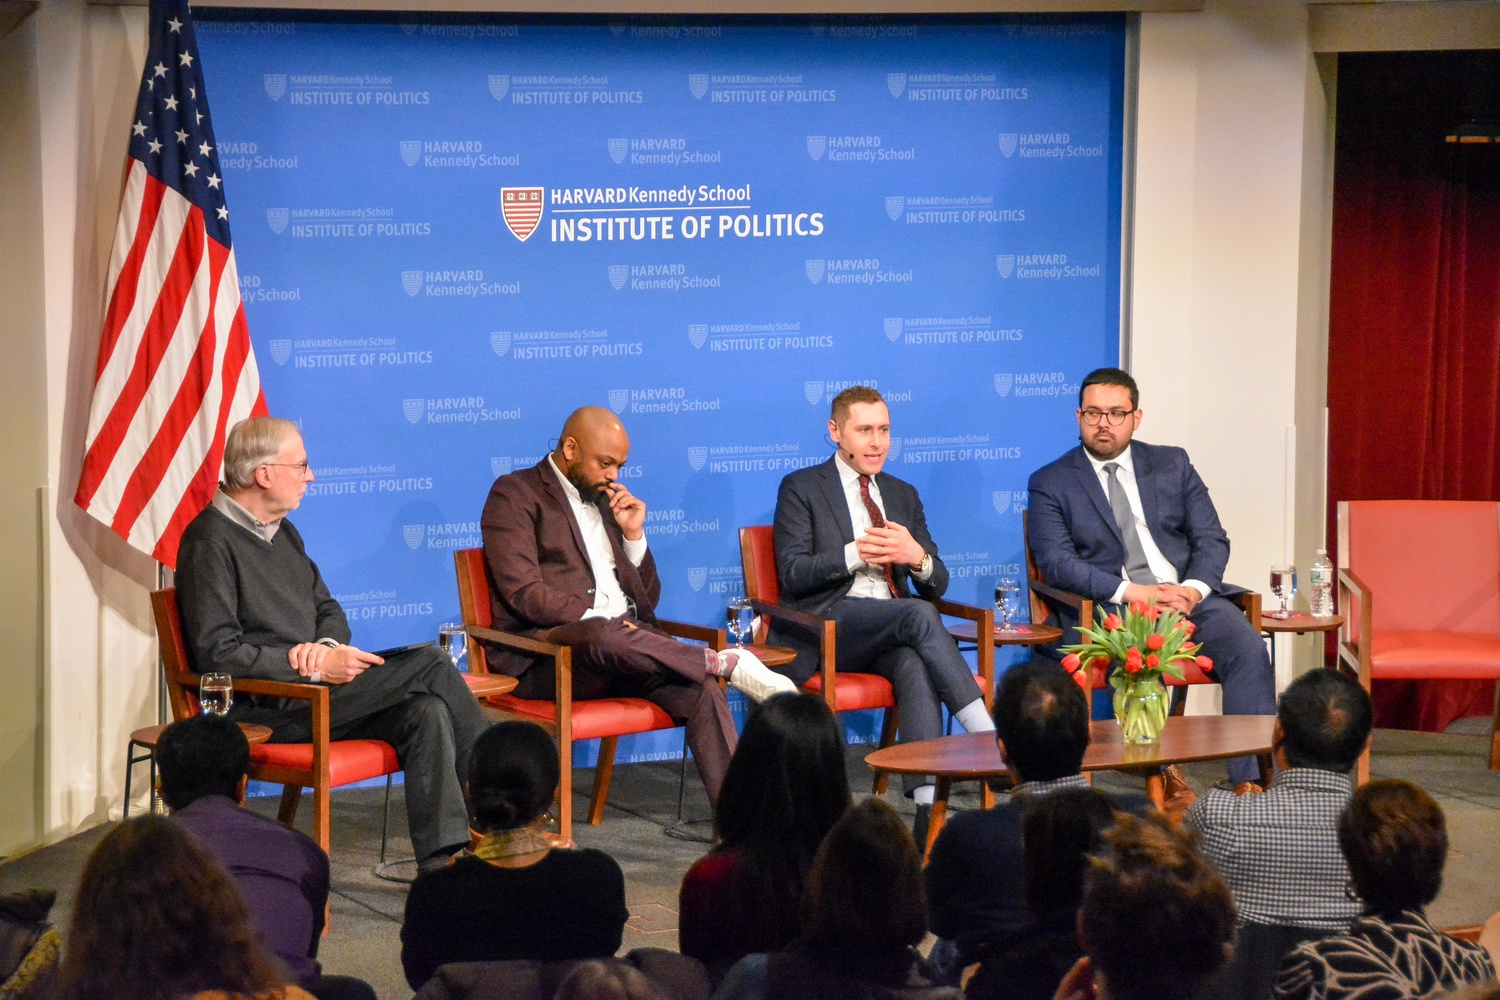 During the second forum of the Institute of Politics' 2020 Election series, four political correspondents reflected on the state of the presidential race and the recent contests in Iowa and New Hampshire.